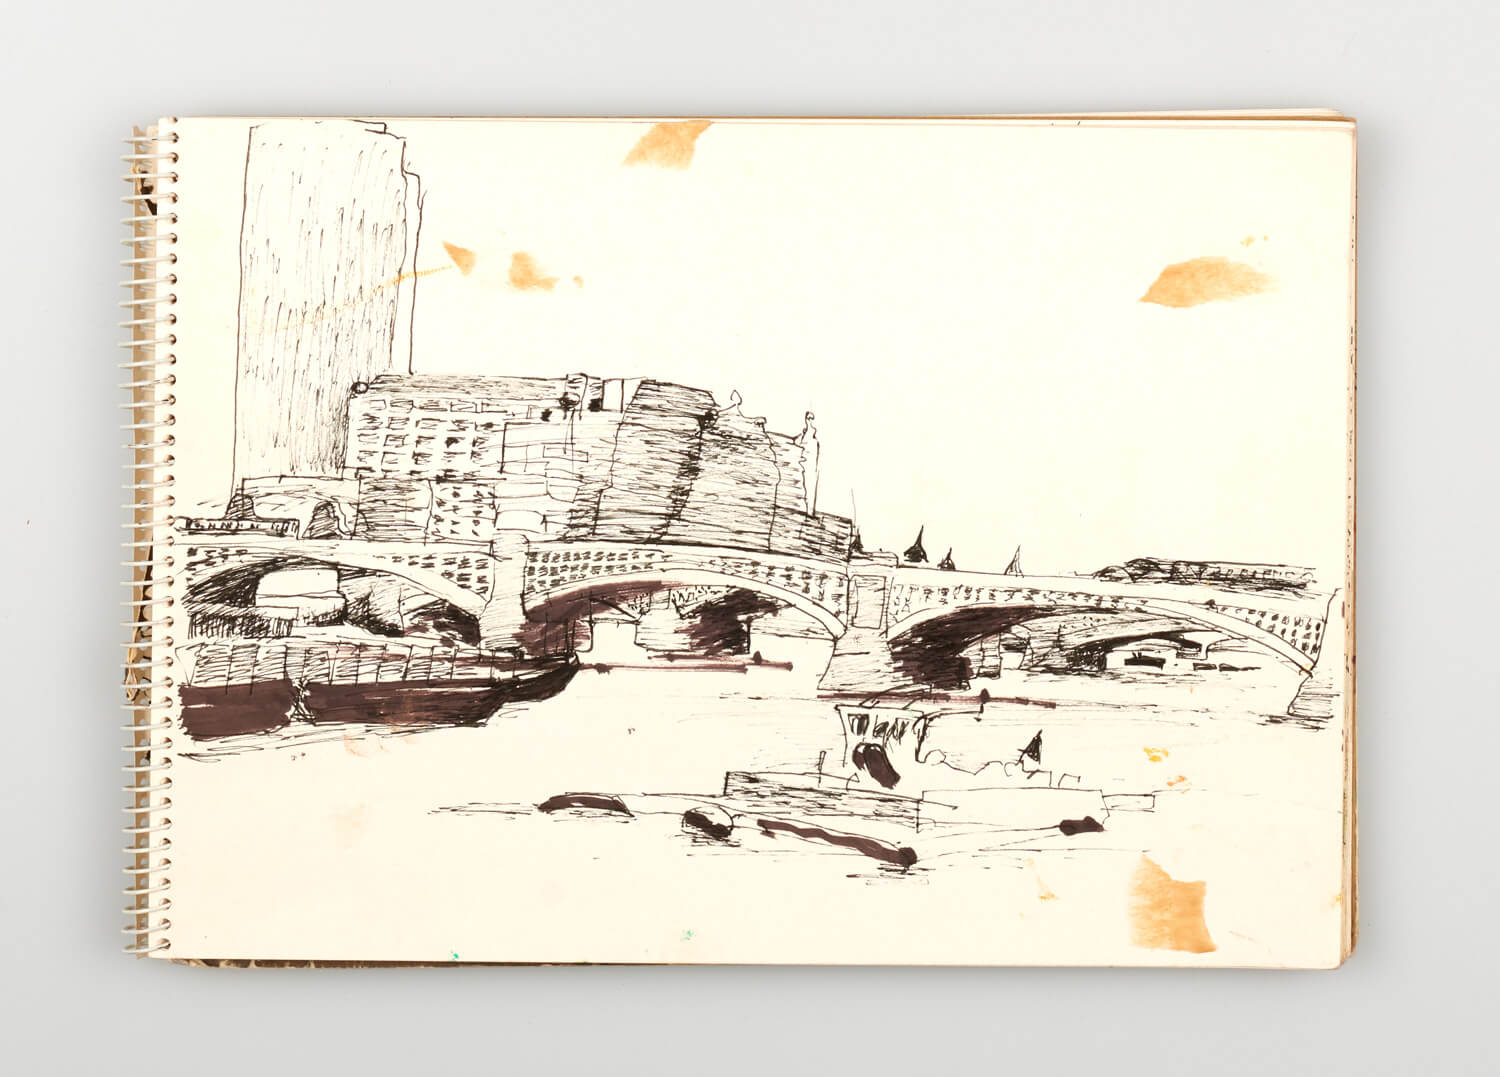 JB218 - Sketch for Bridges on the River Thames - 1992 - 21 x 30 cm - Pen and Ink on cartridge paper